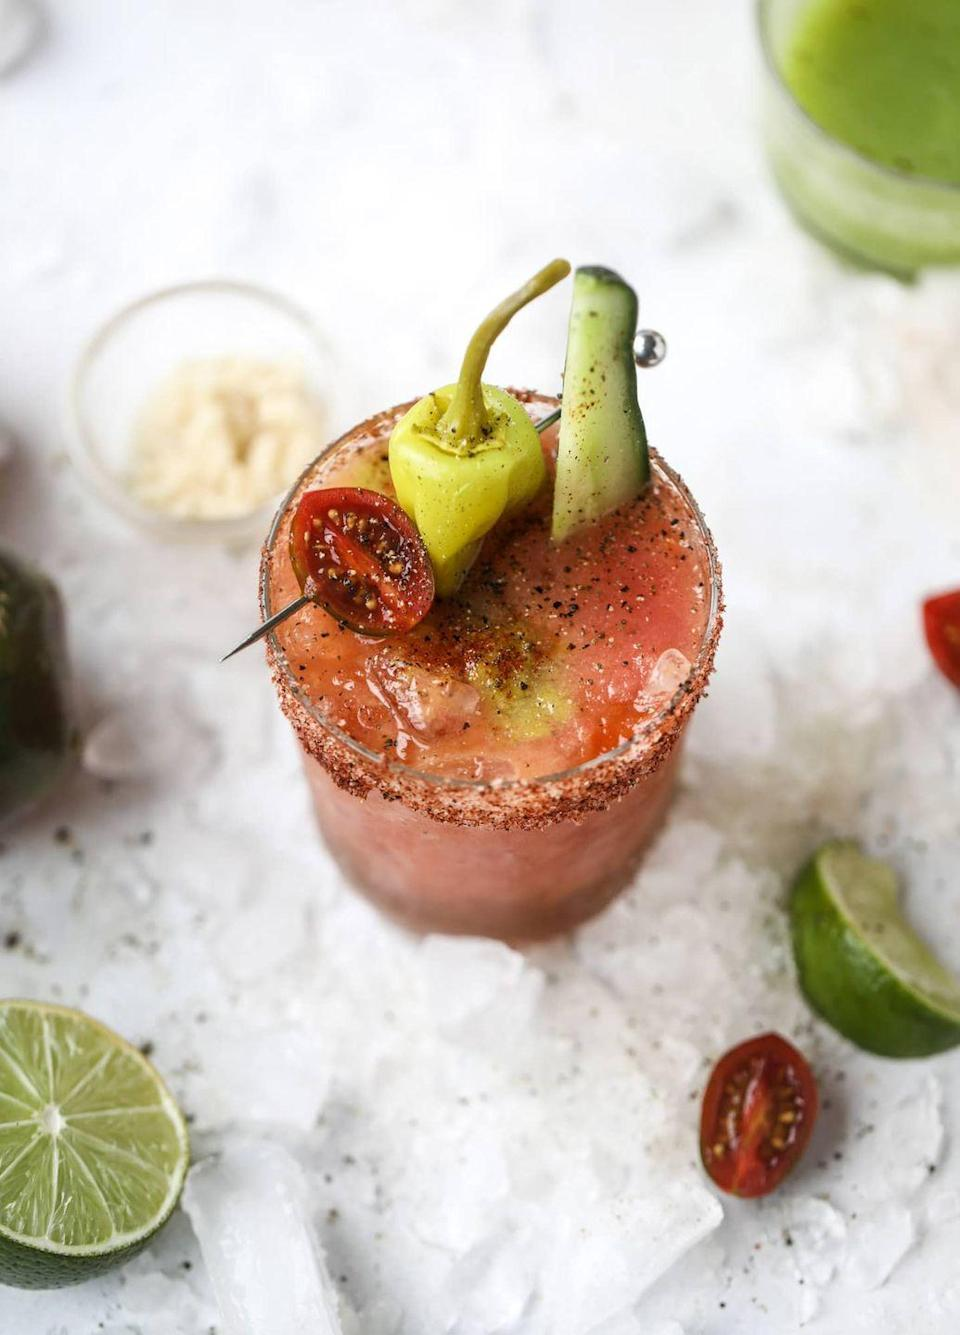 """<p>Your garden's bounty is good for more than mealtime. Use your harvest to give the classic brunch cocktail the ultimate glow up. </p><p>Get the recipe at <a href=""""https://www.howsweeteats.com/2018/08/bloody-mary-recipe/"""" rel=""""nofollow noopener"""" target=""""_blank"""" data-ylk=""""slk:How Sweet Eats"""" class=""""link rapid-noclick-resp"""">How Sweet Eats</a>.</p>"""